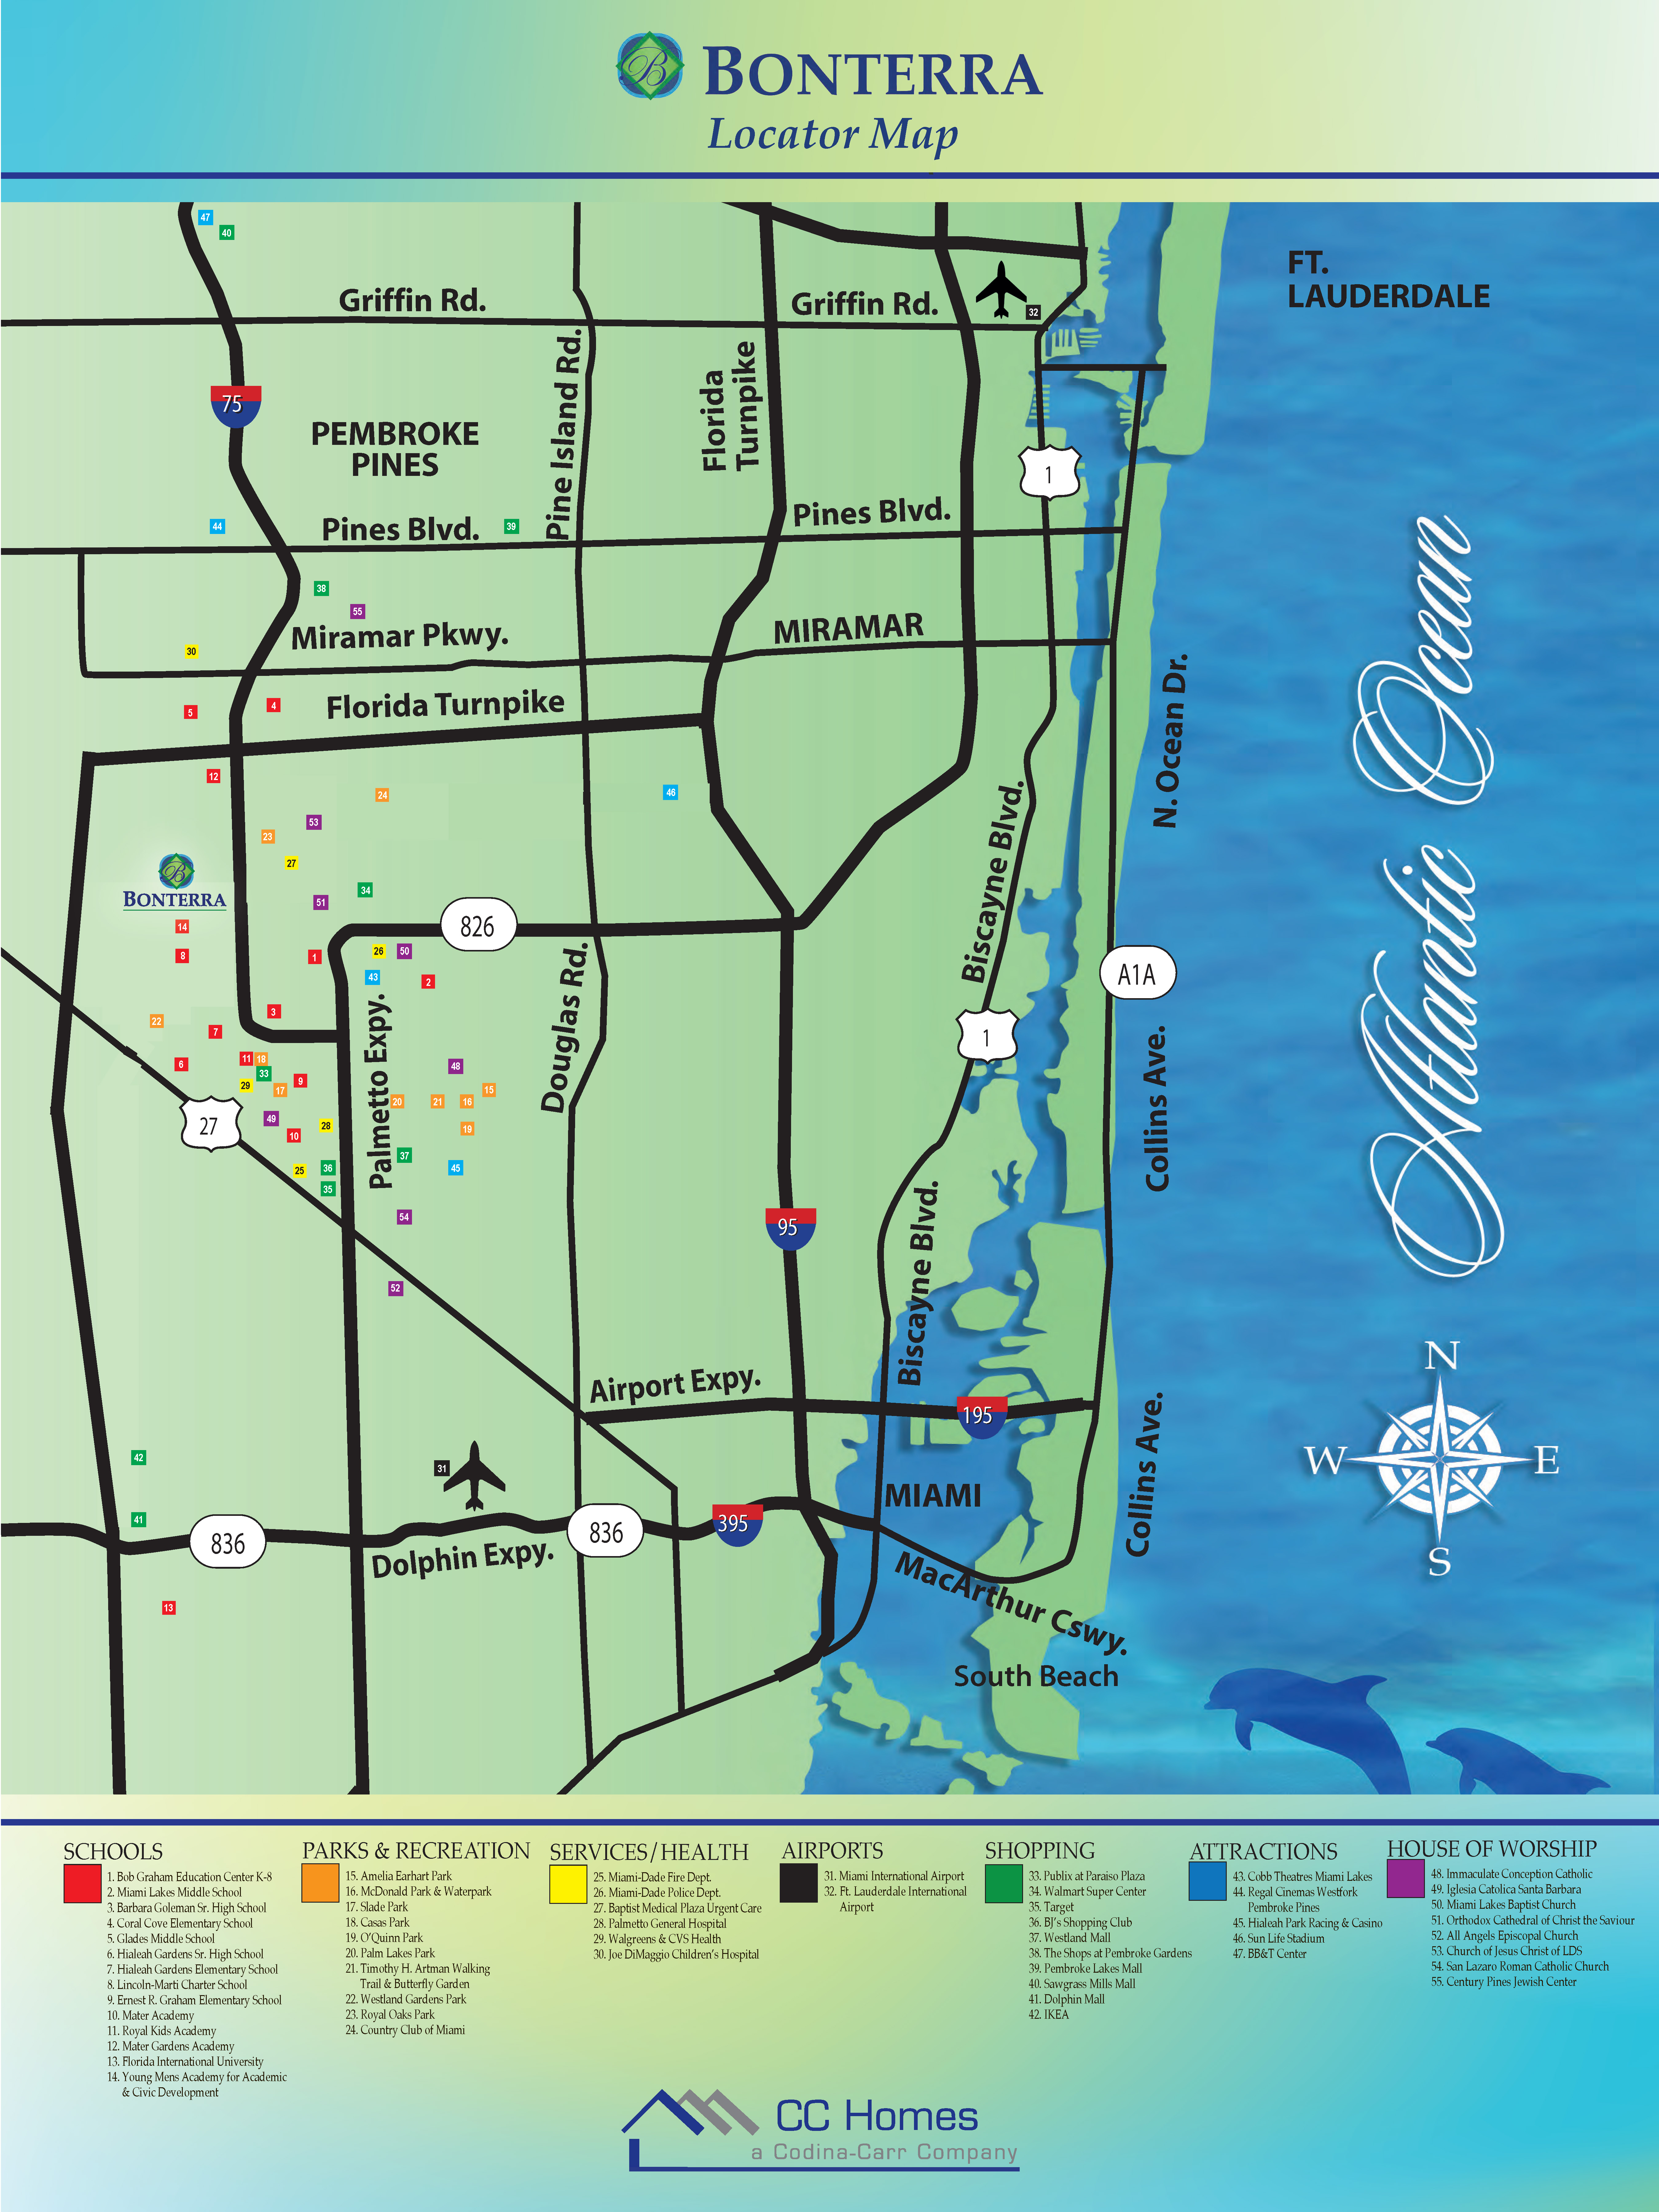 Bonterra A Hot New Community Hits the South Florida Map  CC Homes